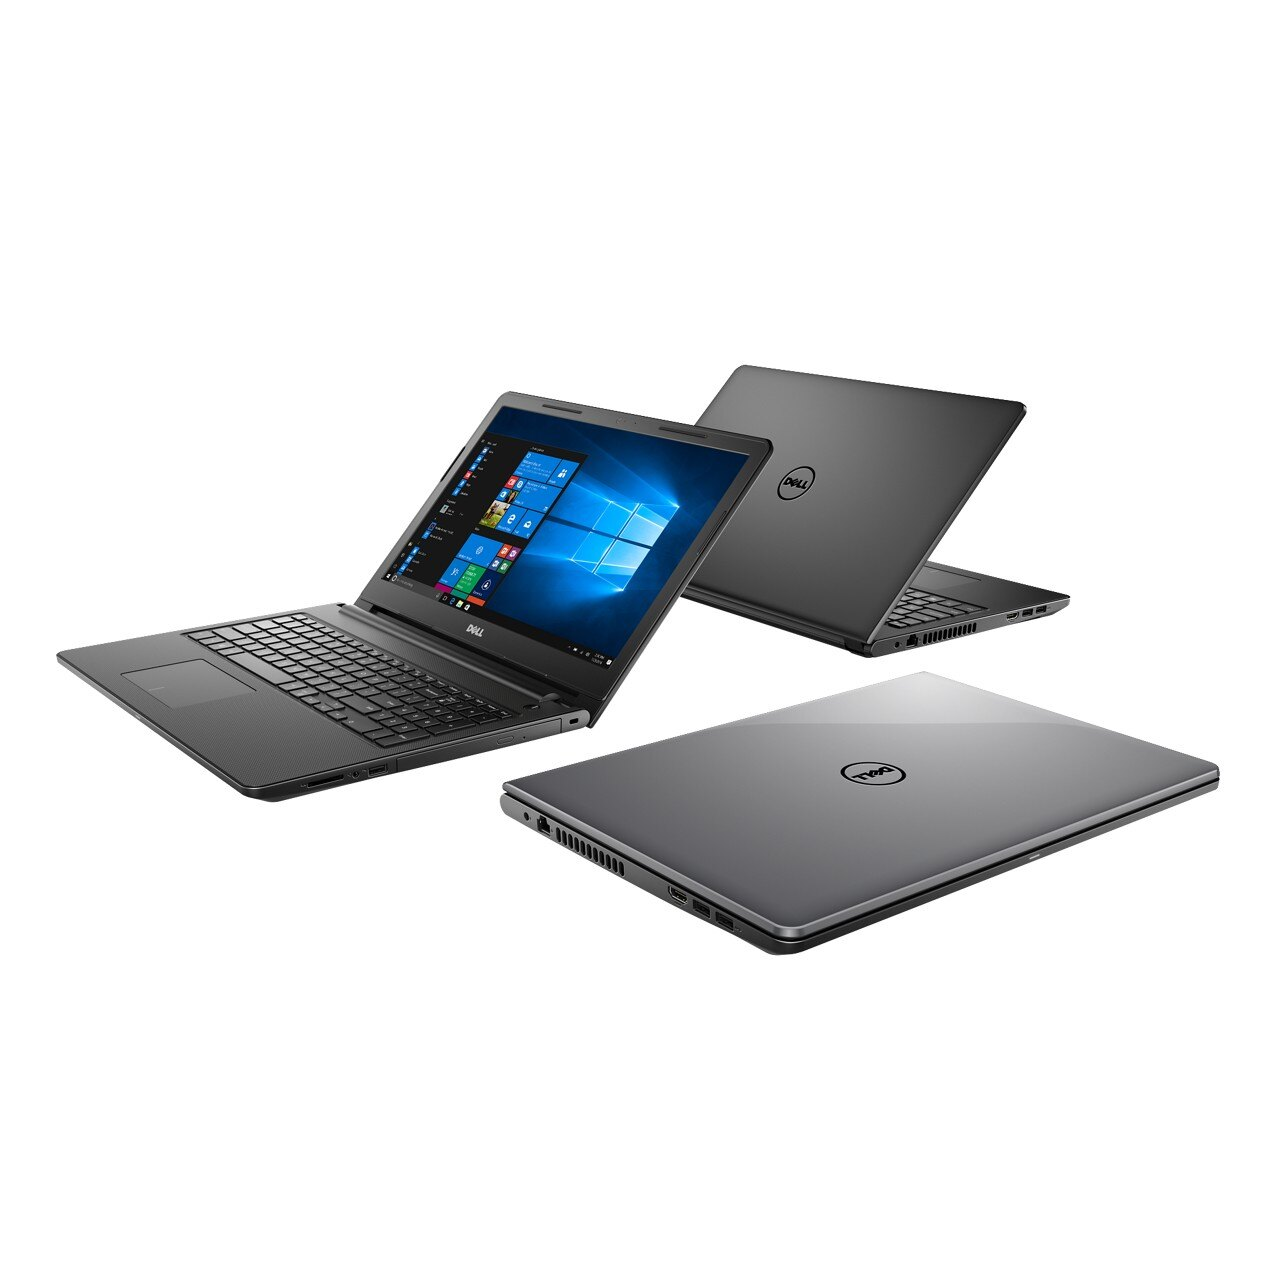 Dell Inspiron 15 3000- 3567- i5-7200U - 1TB HDD- 8GB RAM